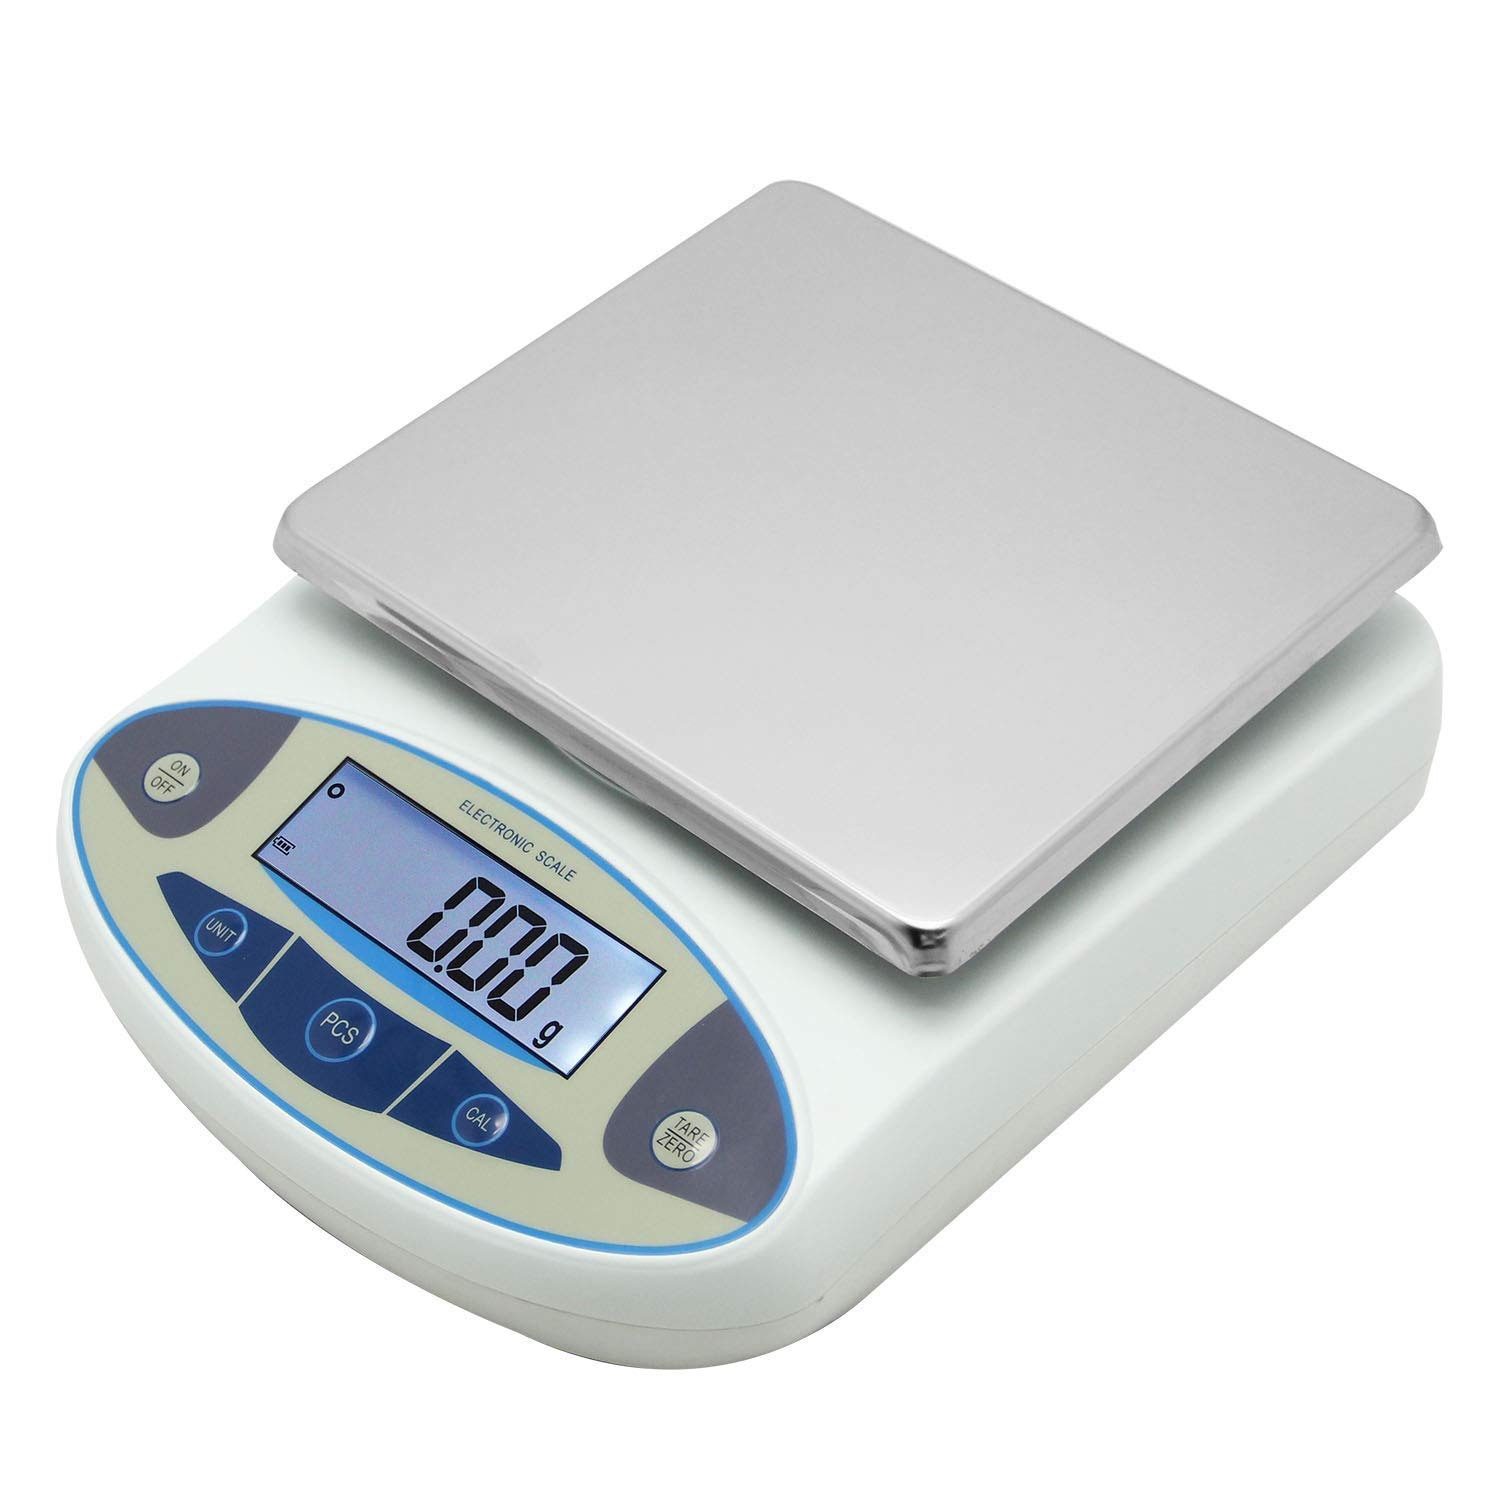 CGOLDENWALL High Precision Lab Digital Scale Analytical Electronic Balance Laboratory Lab Precision Scale Jewelry Scales Kitchen Precision Weighing Electronic Scales 0.01g Calibrated (5000g, 0.01g) by CGOLDENWALL